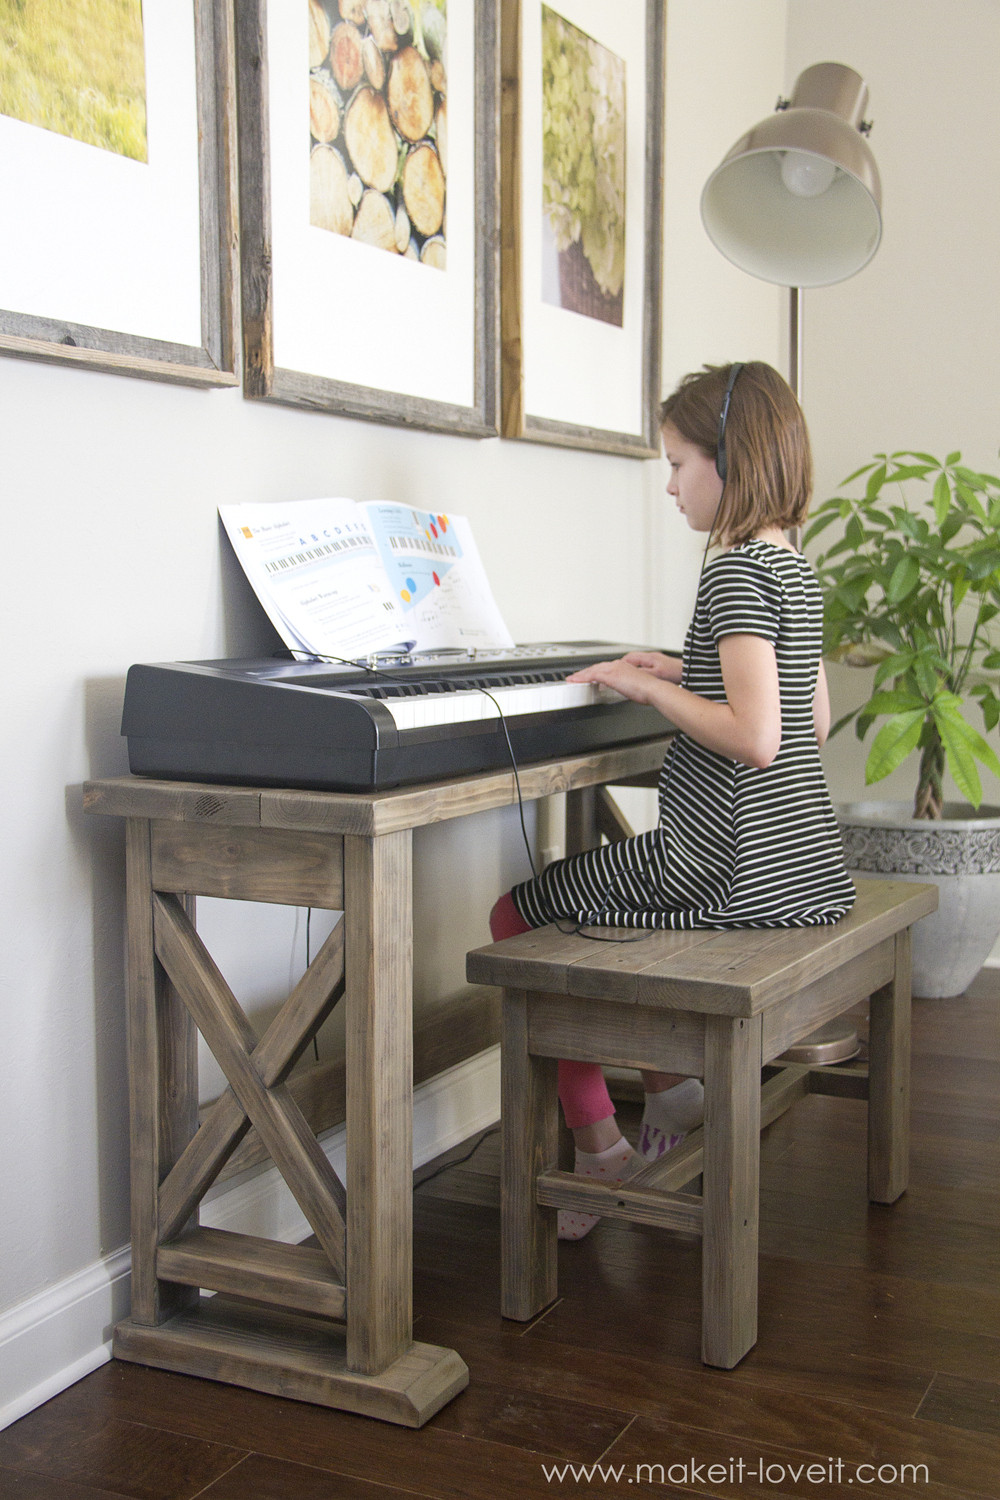 Best ideas about DIY Piano Bench . Save or Pin DIY Digital Piano Stand plus Bench a $25 project Now.